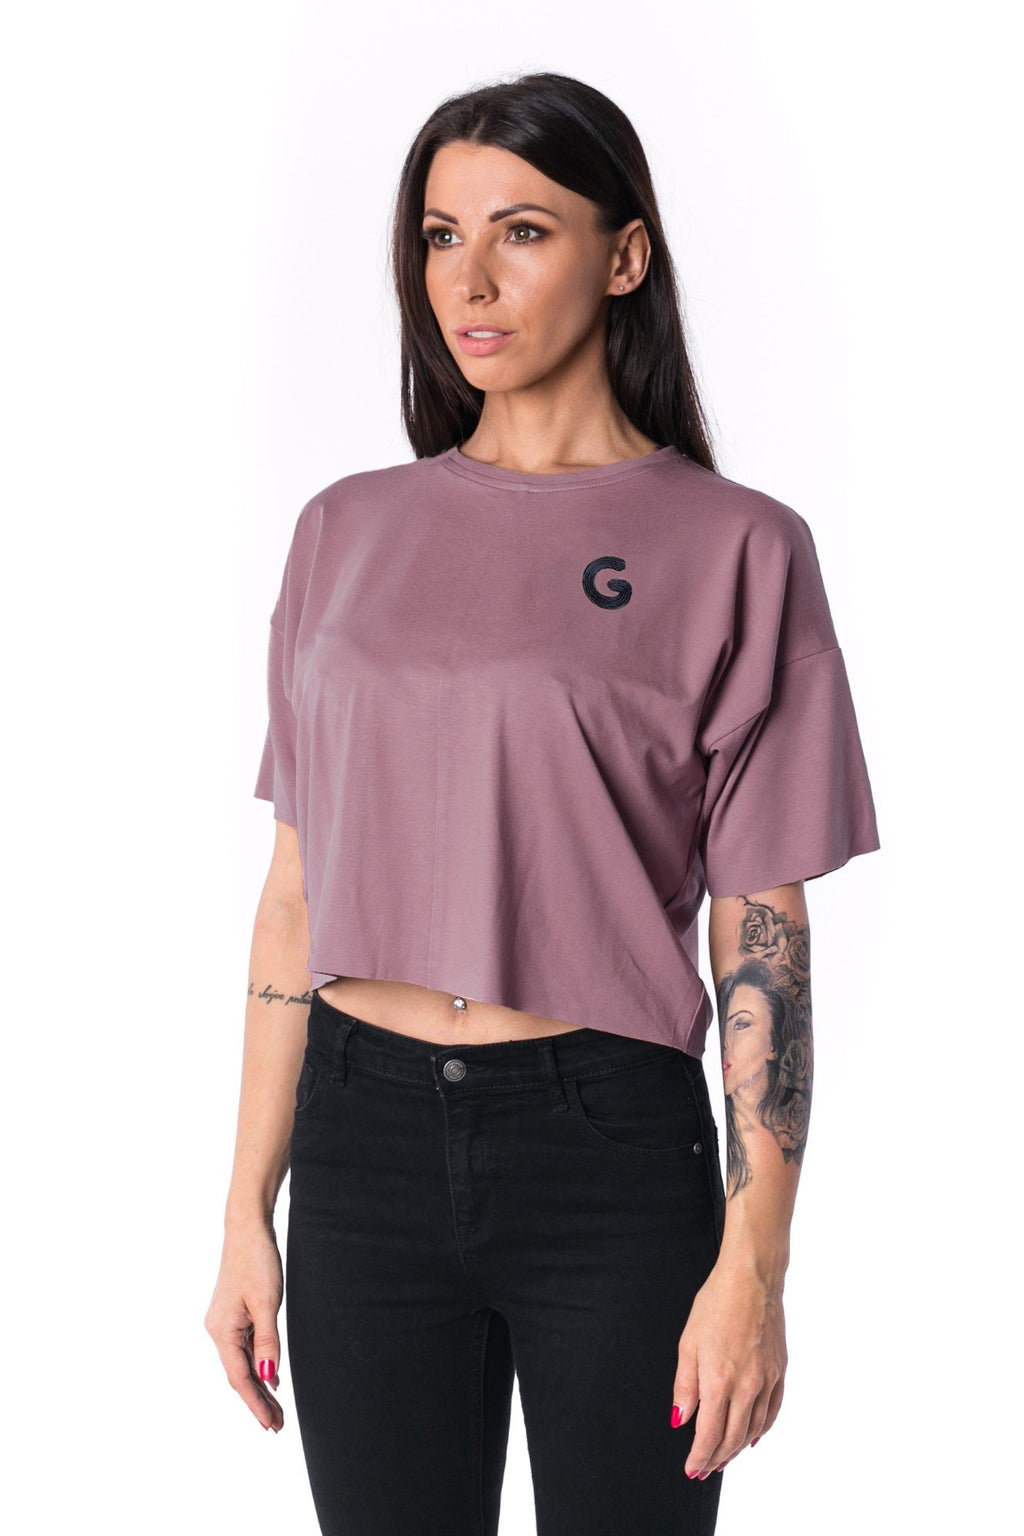 Woman Panelled Oversized Cropped Tee 17 // oldpink